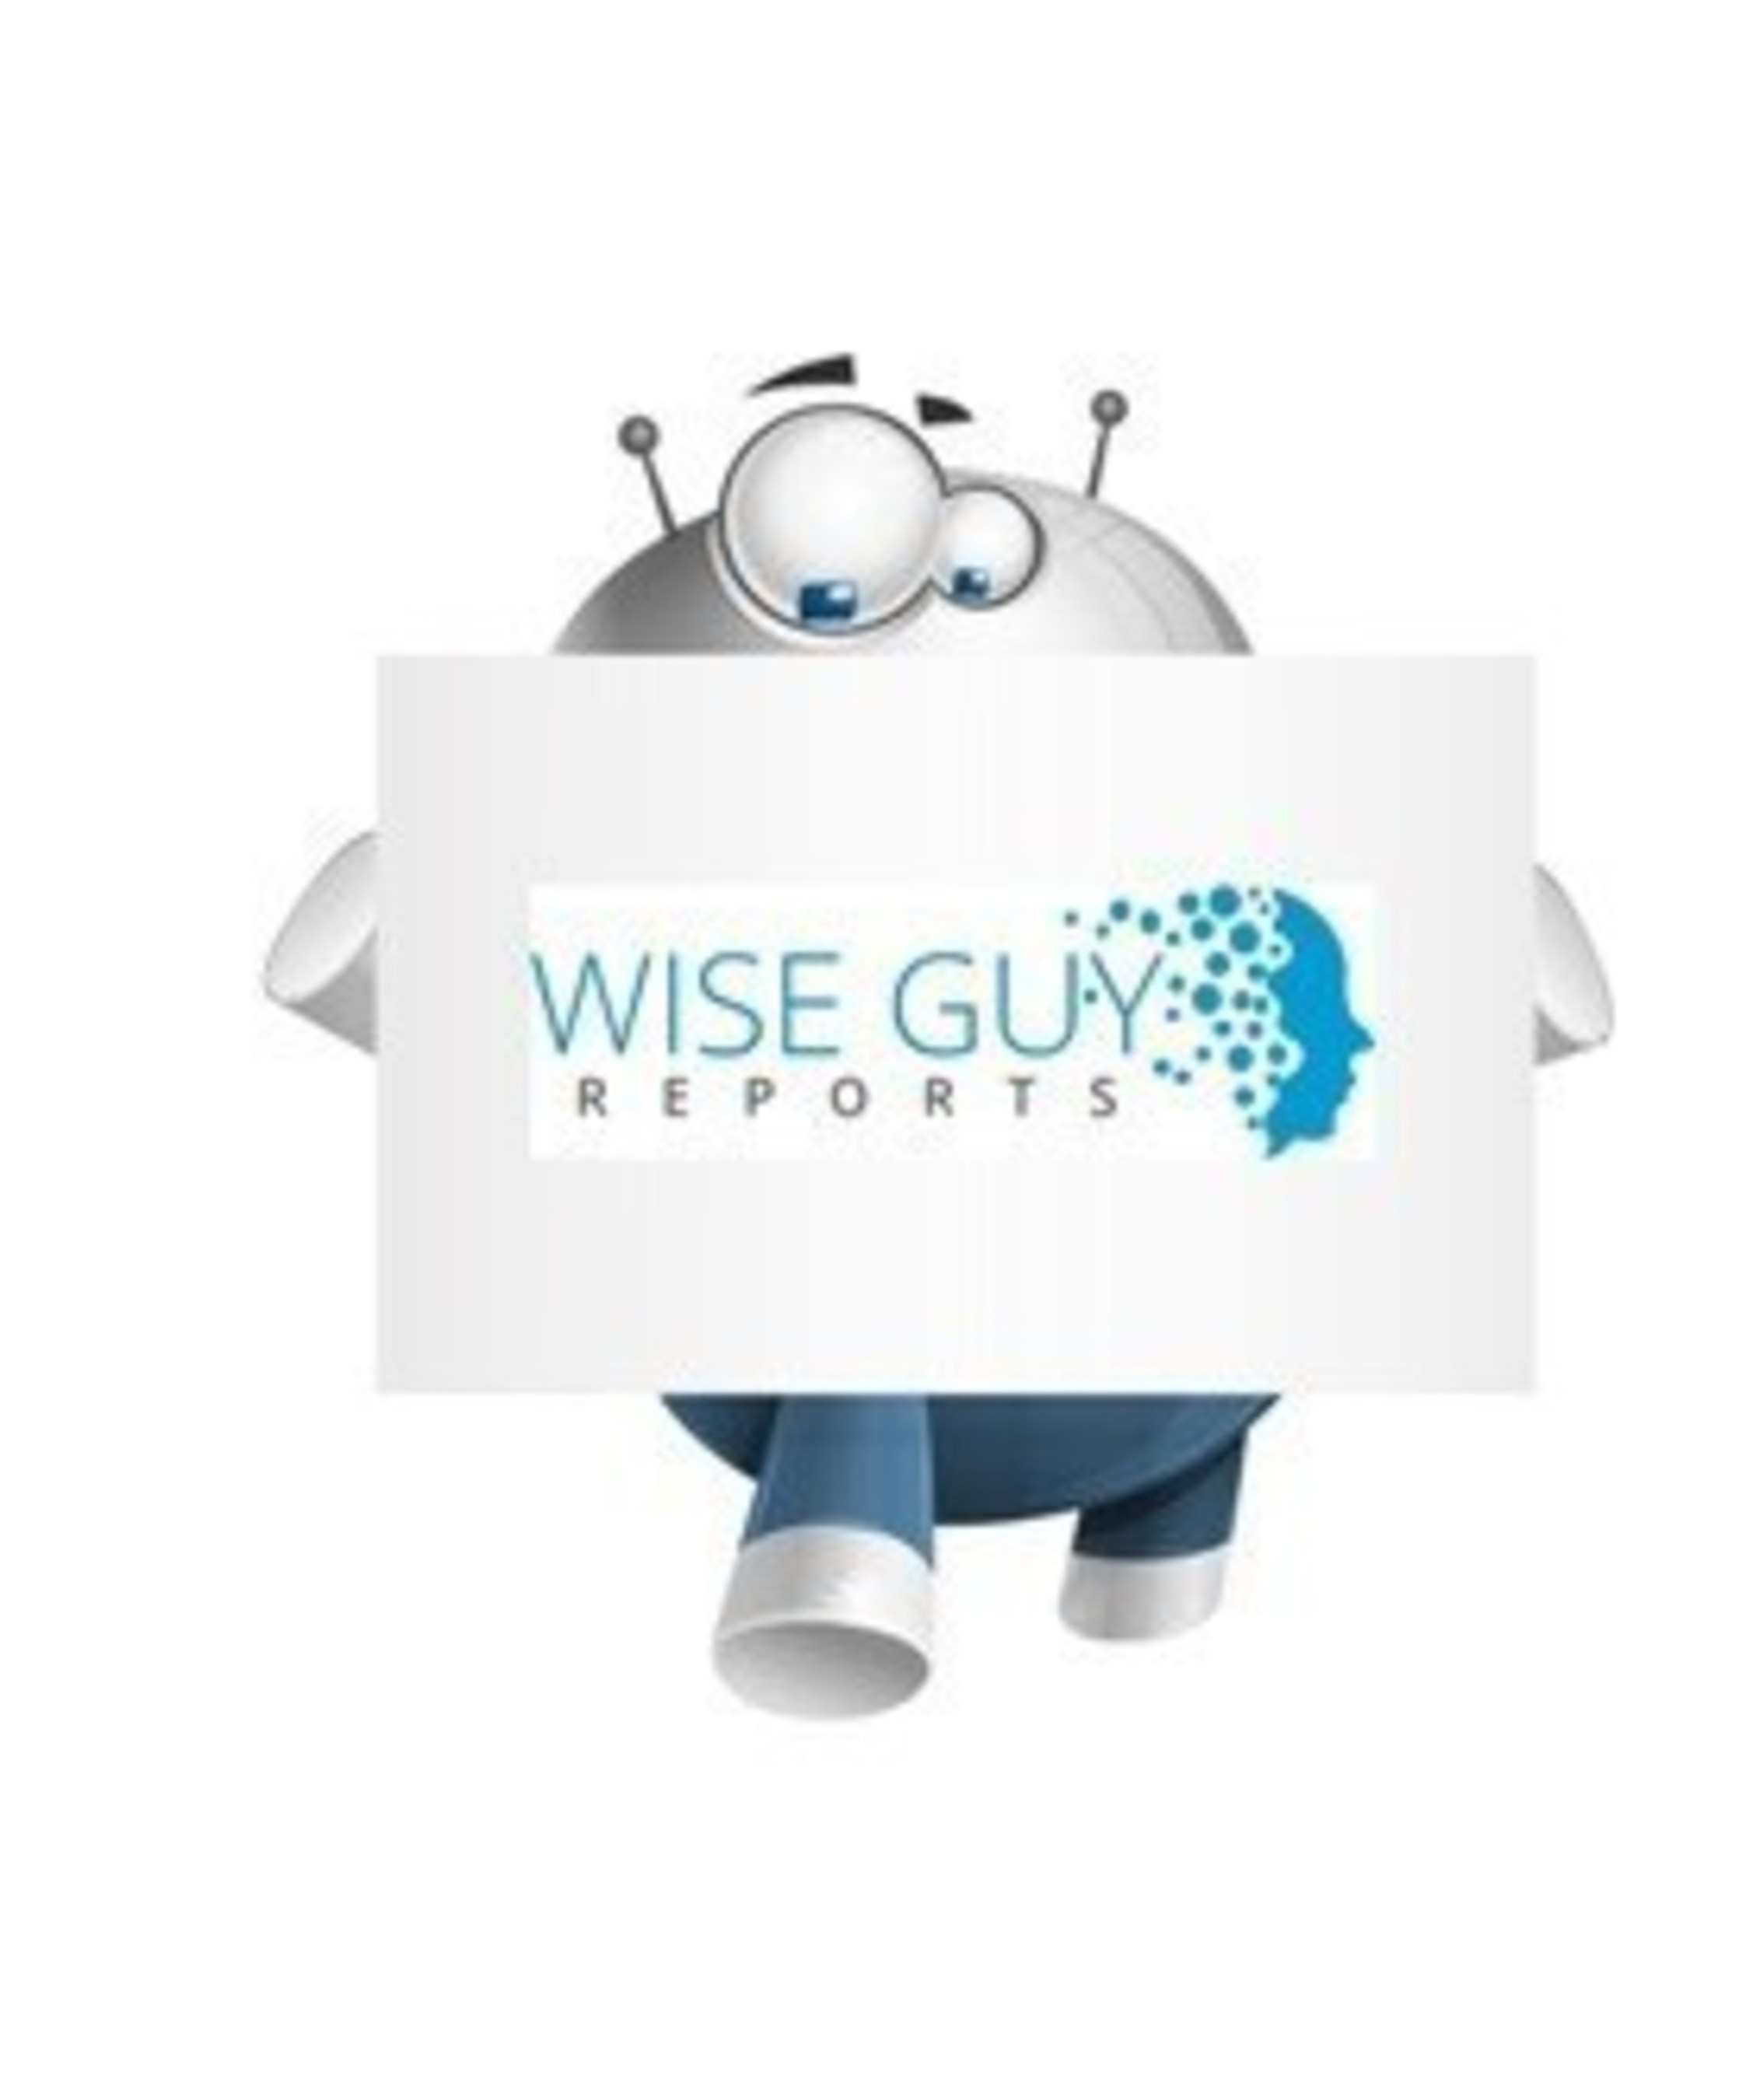 Global and Chine Eco Vehicle (Eco Cars) Market Growth Drivers & Challenges 2016 to 2020 Research Report Available at WiseGuyReprots.com